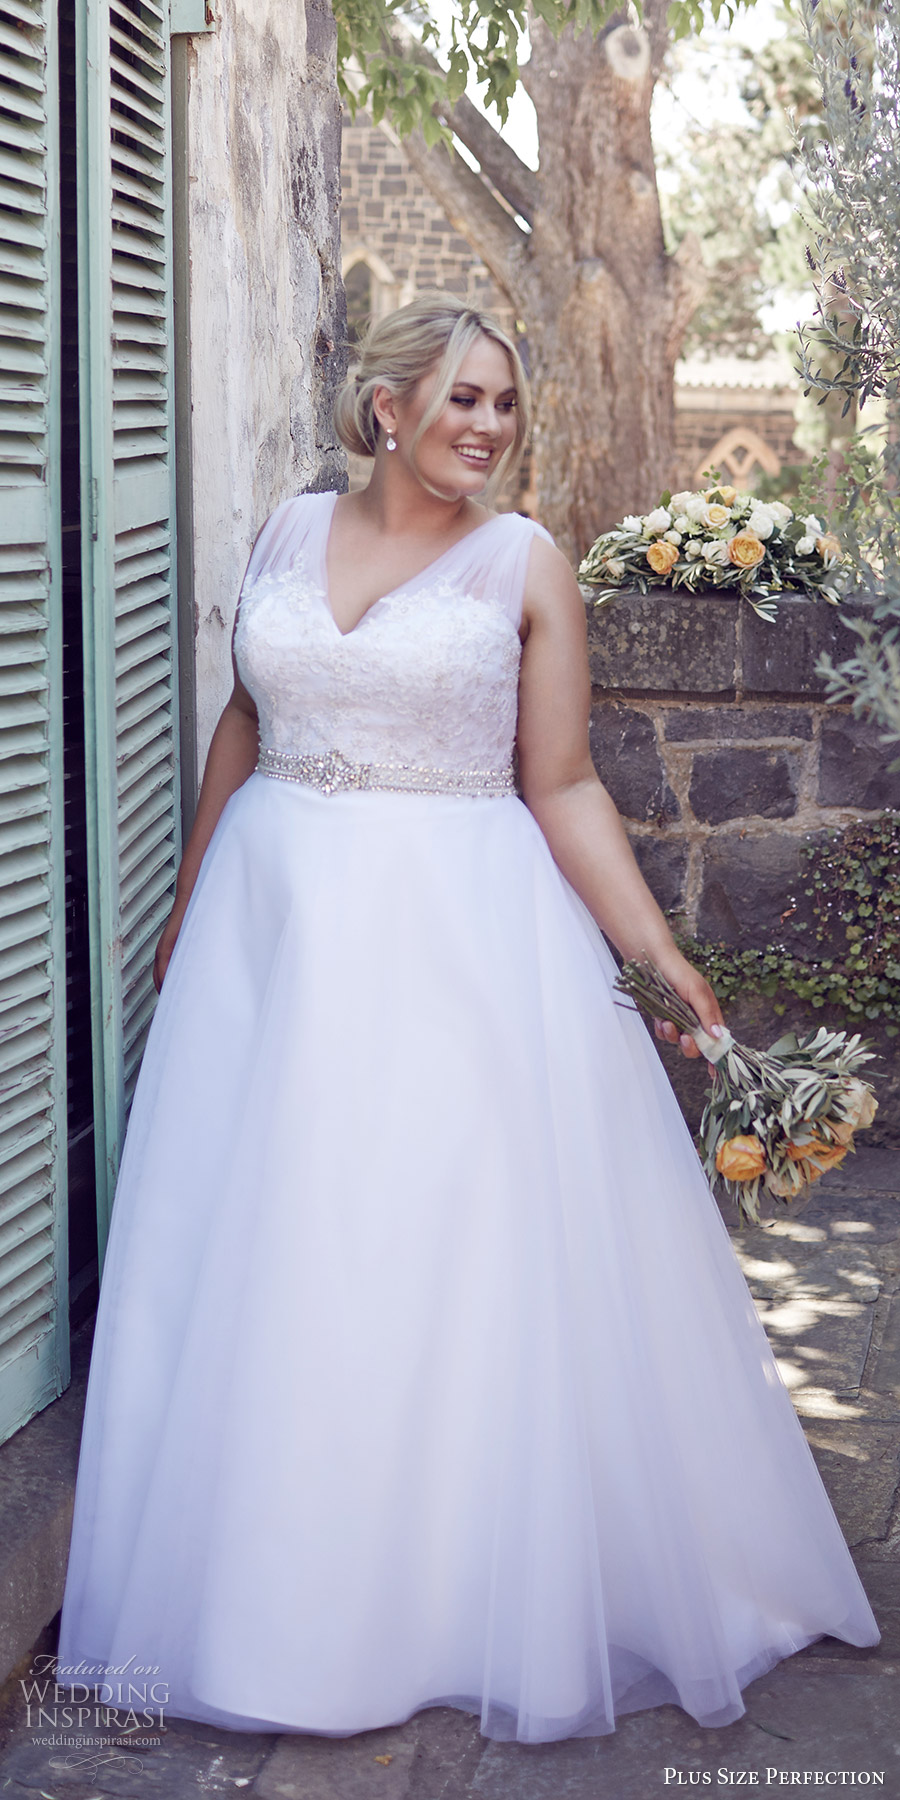 Plus size perfection wedding dresses it s a love story for Best wedding dress styles for plus size brides